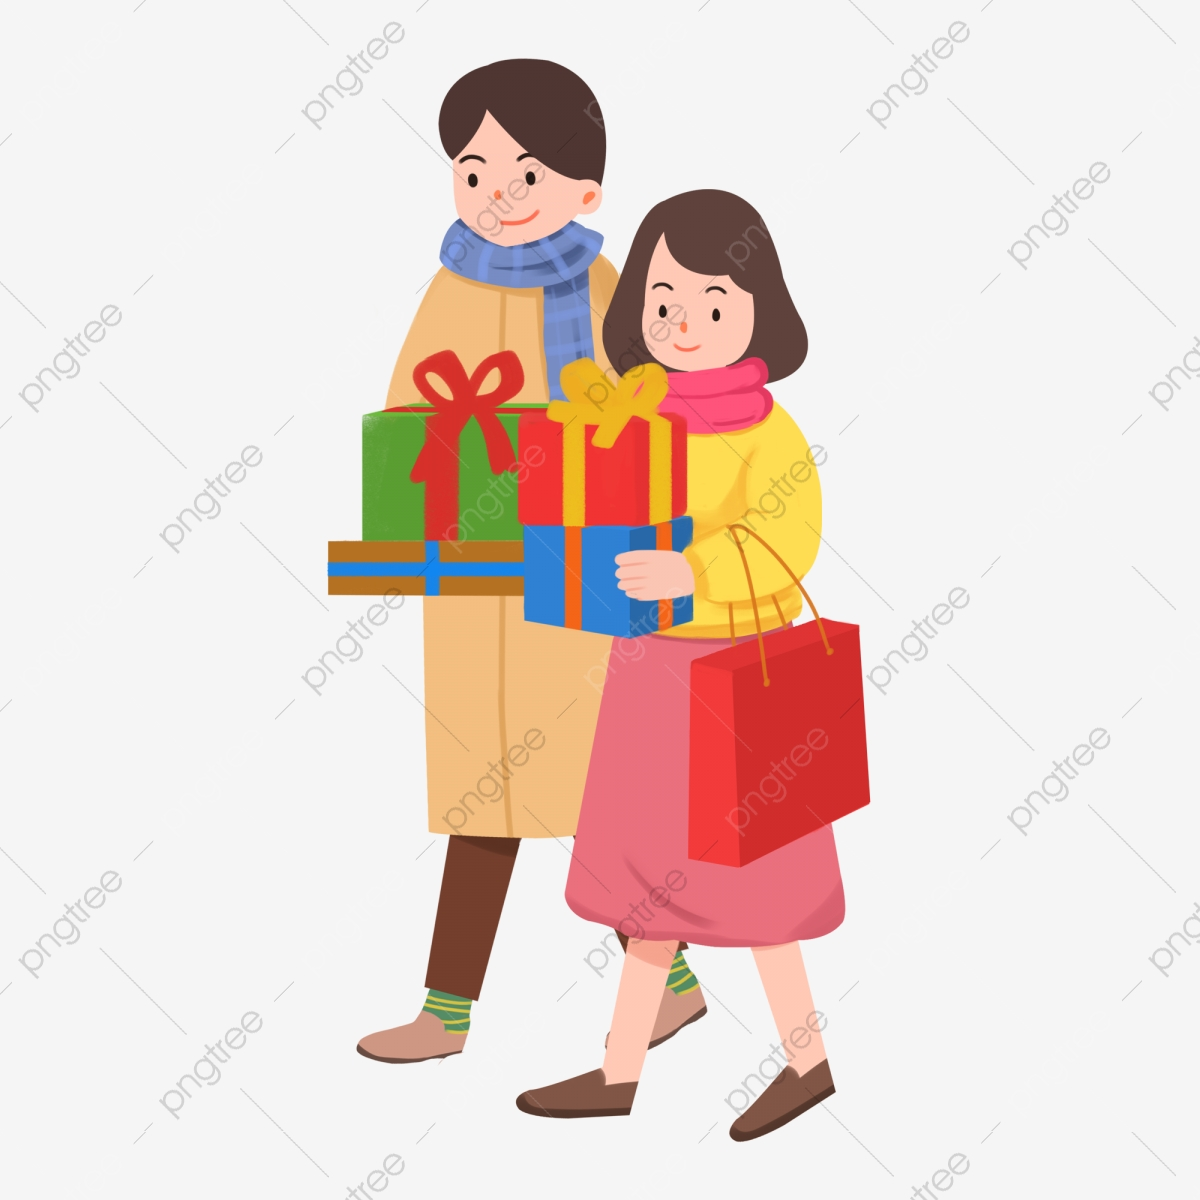 Shopping malls for men. Mall clipart cute